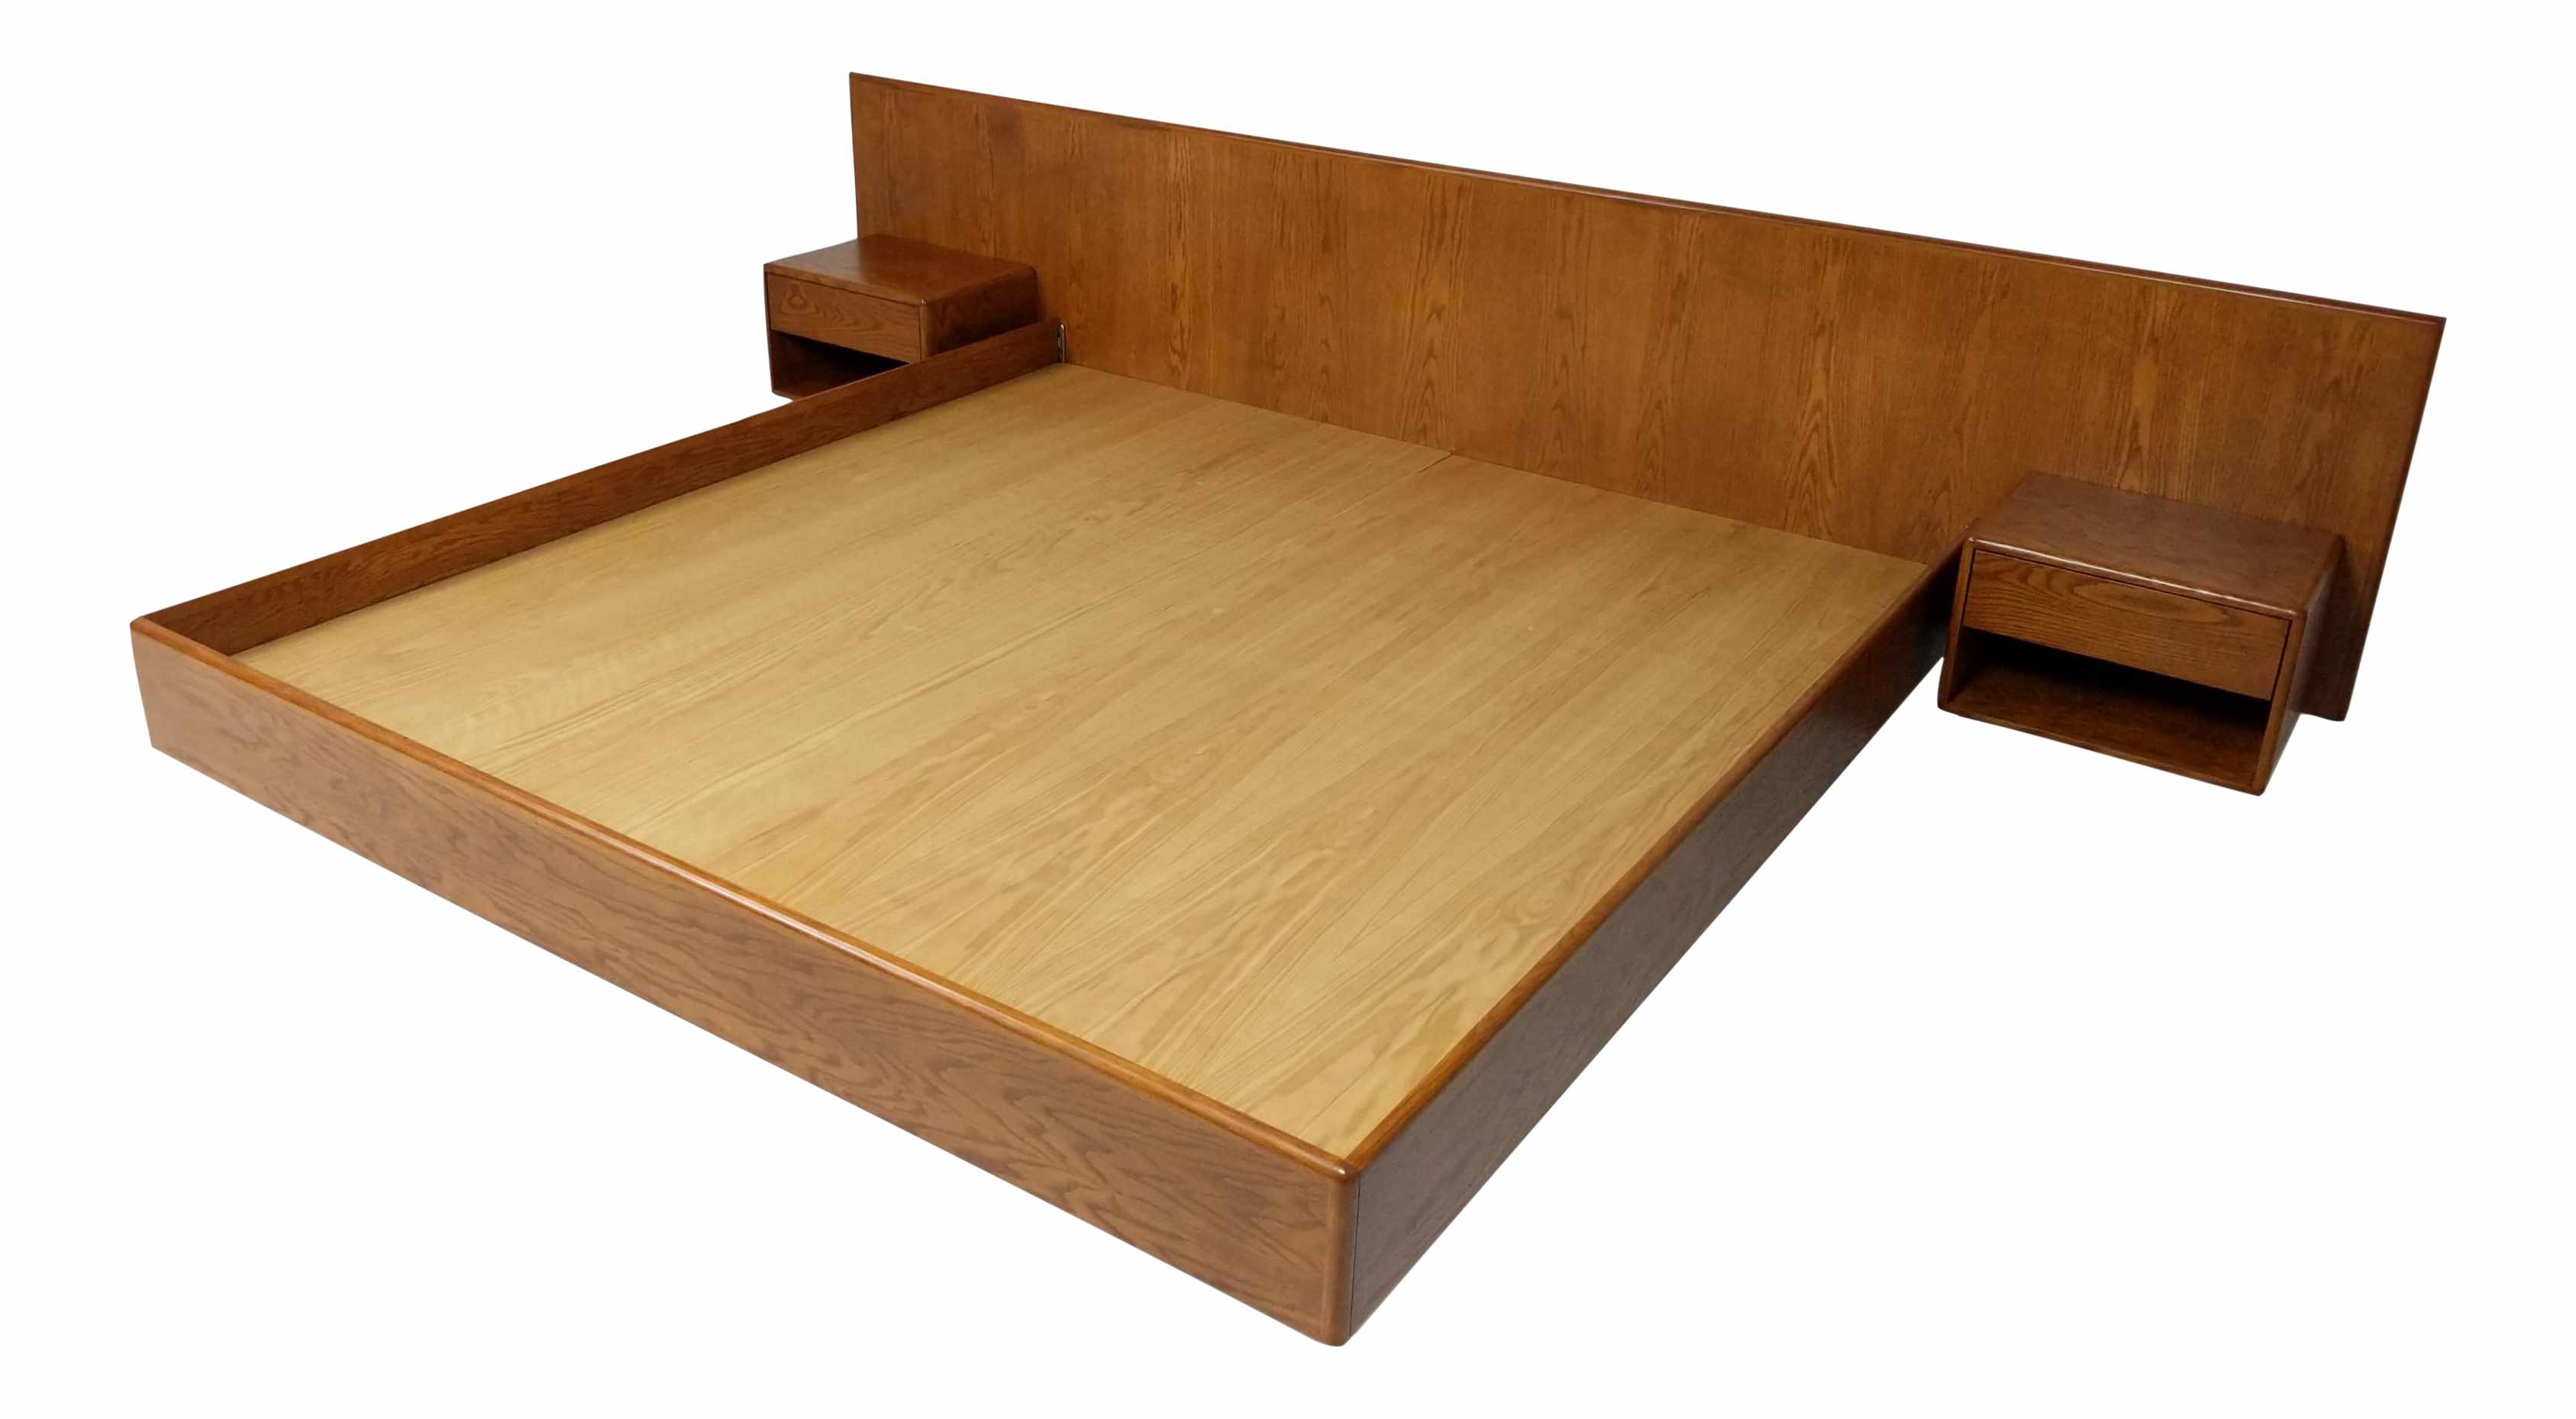 A wooden platform bed with a built-in headboard and nightstands.